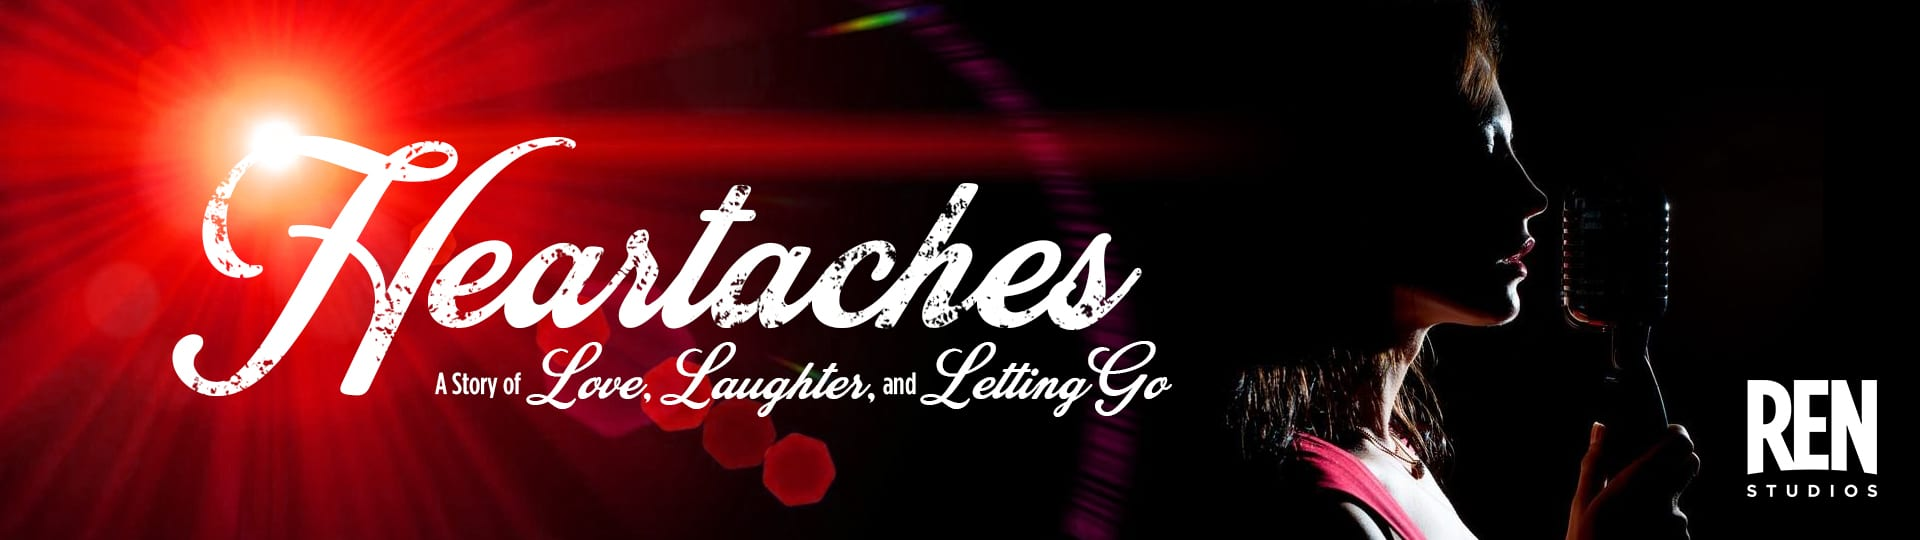 Heartaches: A Story of Love, Laughter, and Letting Go, Ren Studios